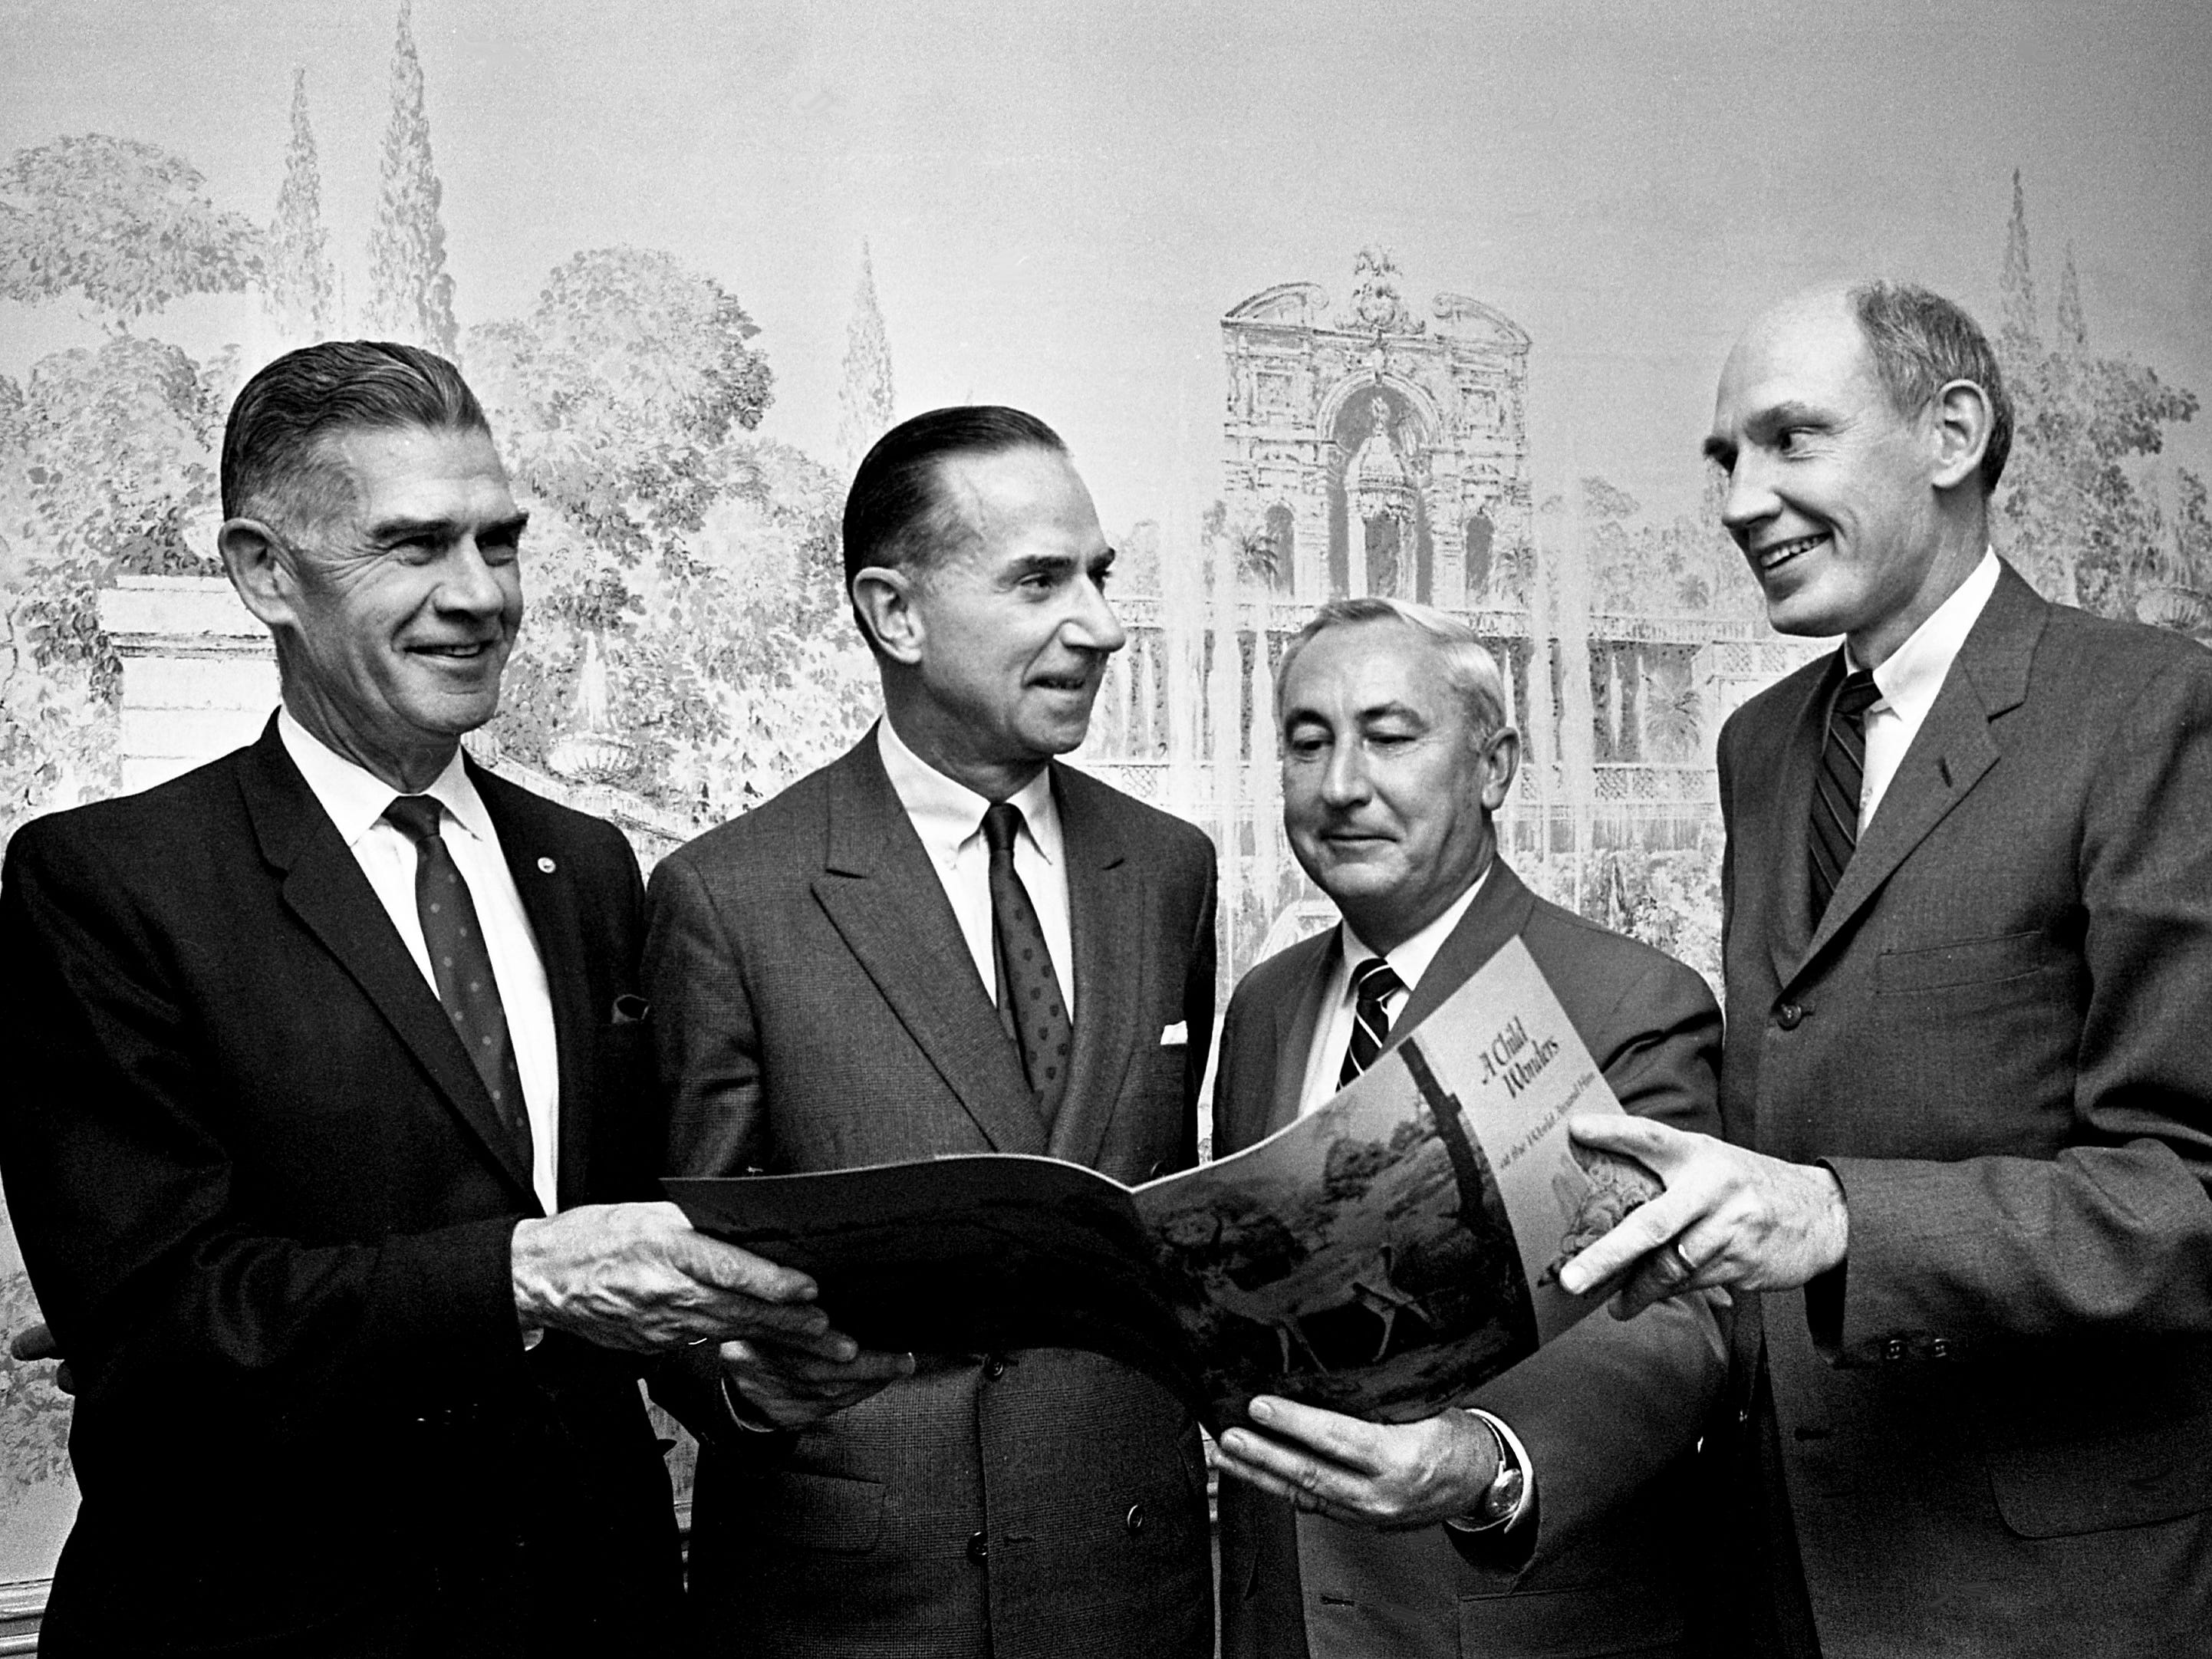 Dan W. Maddox, second from left, chairman of the board of Associates Capital Corp., discusses future plans for the new Nashville Children's Museum planned on the Fort Negley property after making a gift of $100,000 to the museum's fund drive during the board of trustees meeting at Belle Meade Country Club on Dec. 4, 1968. With Maddox, an internationally known big game hunter, are trustee Vernon Sharp, left, Charles R. Mott Jr., chairman of the fund drive, and museum president Joe Thompson.